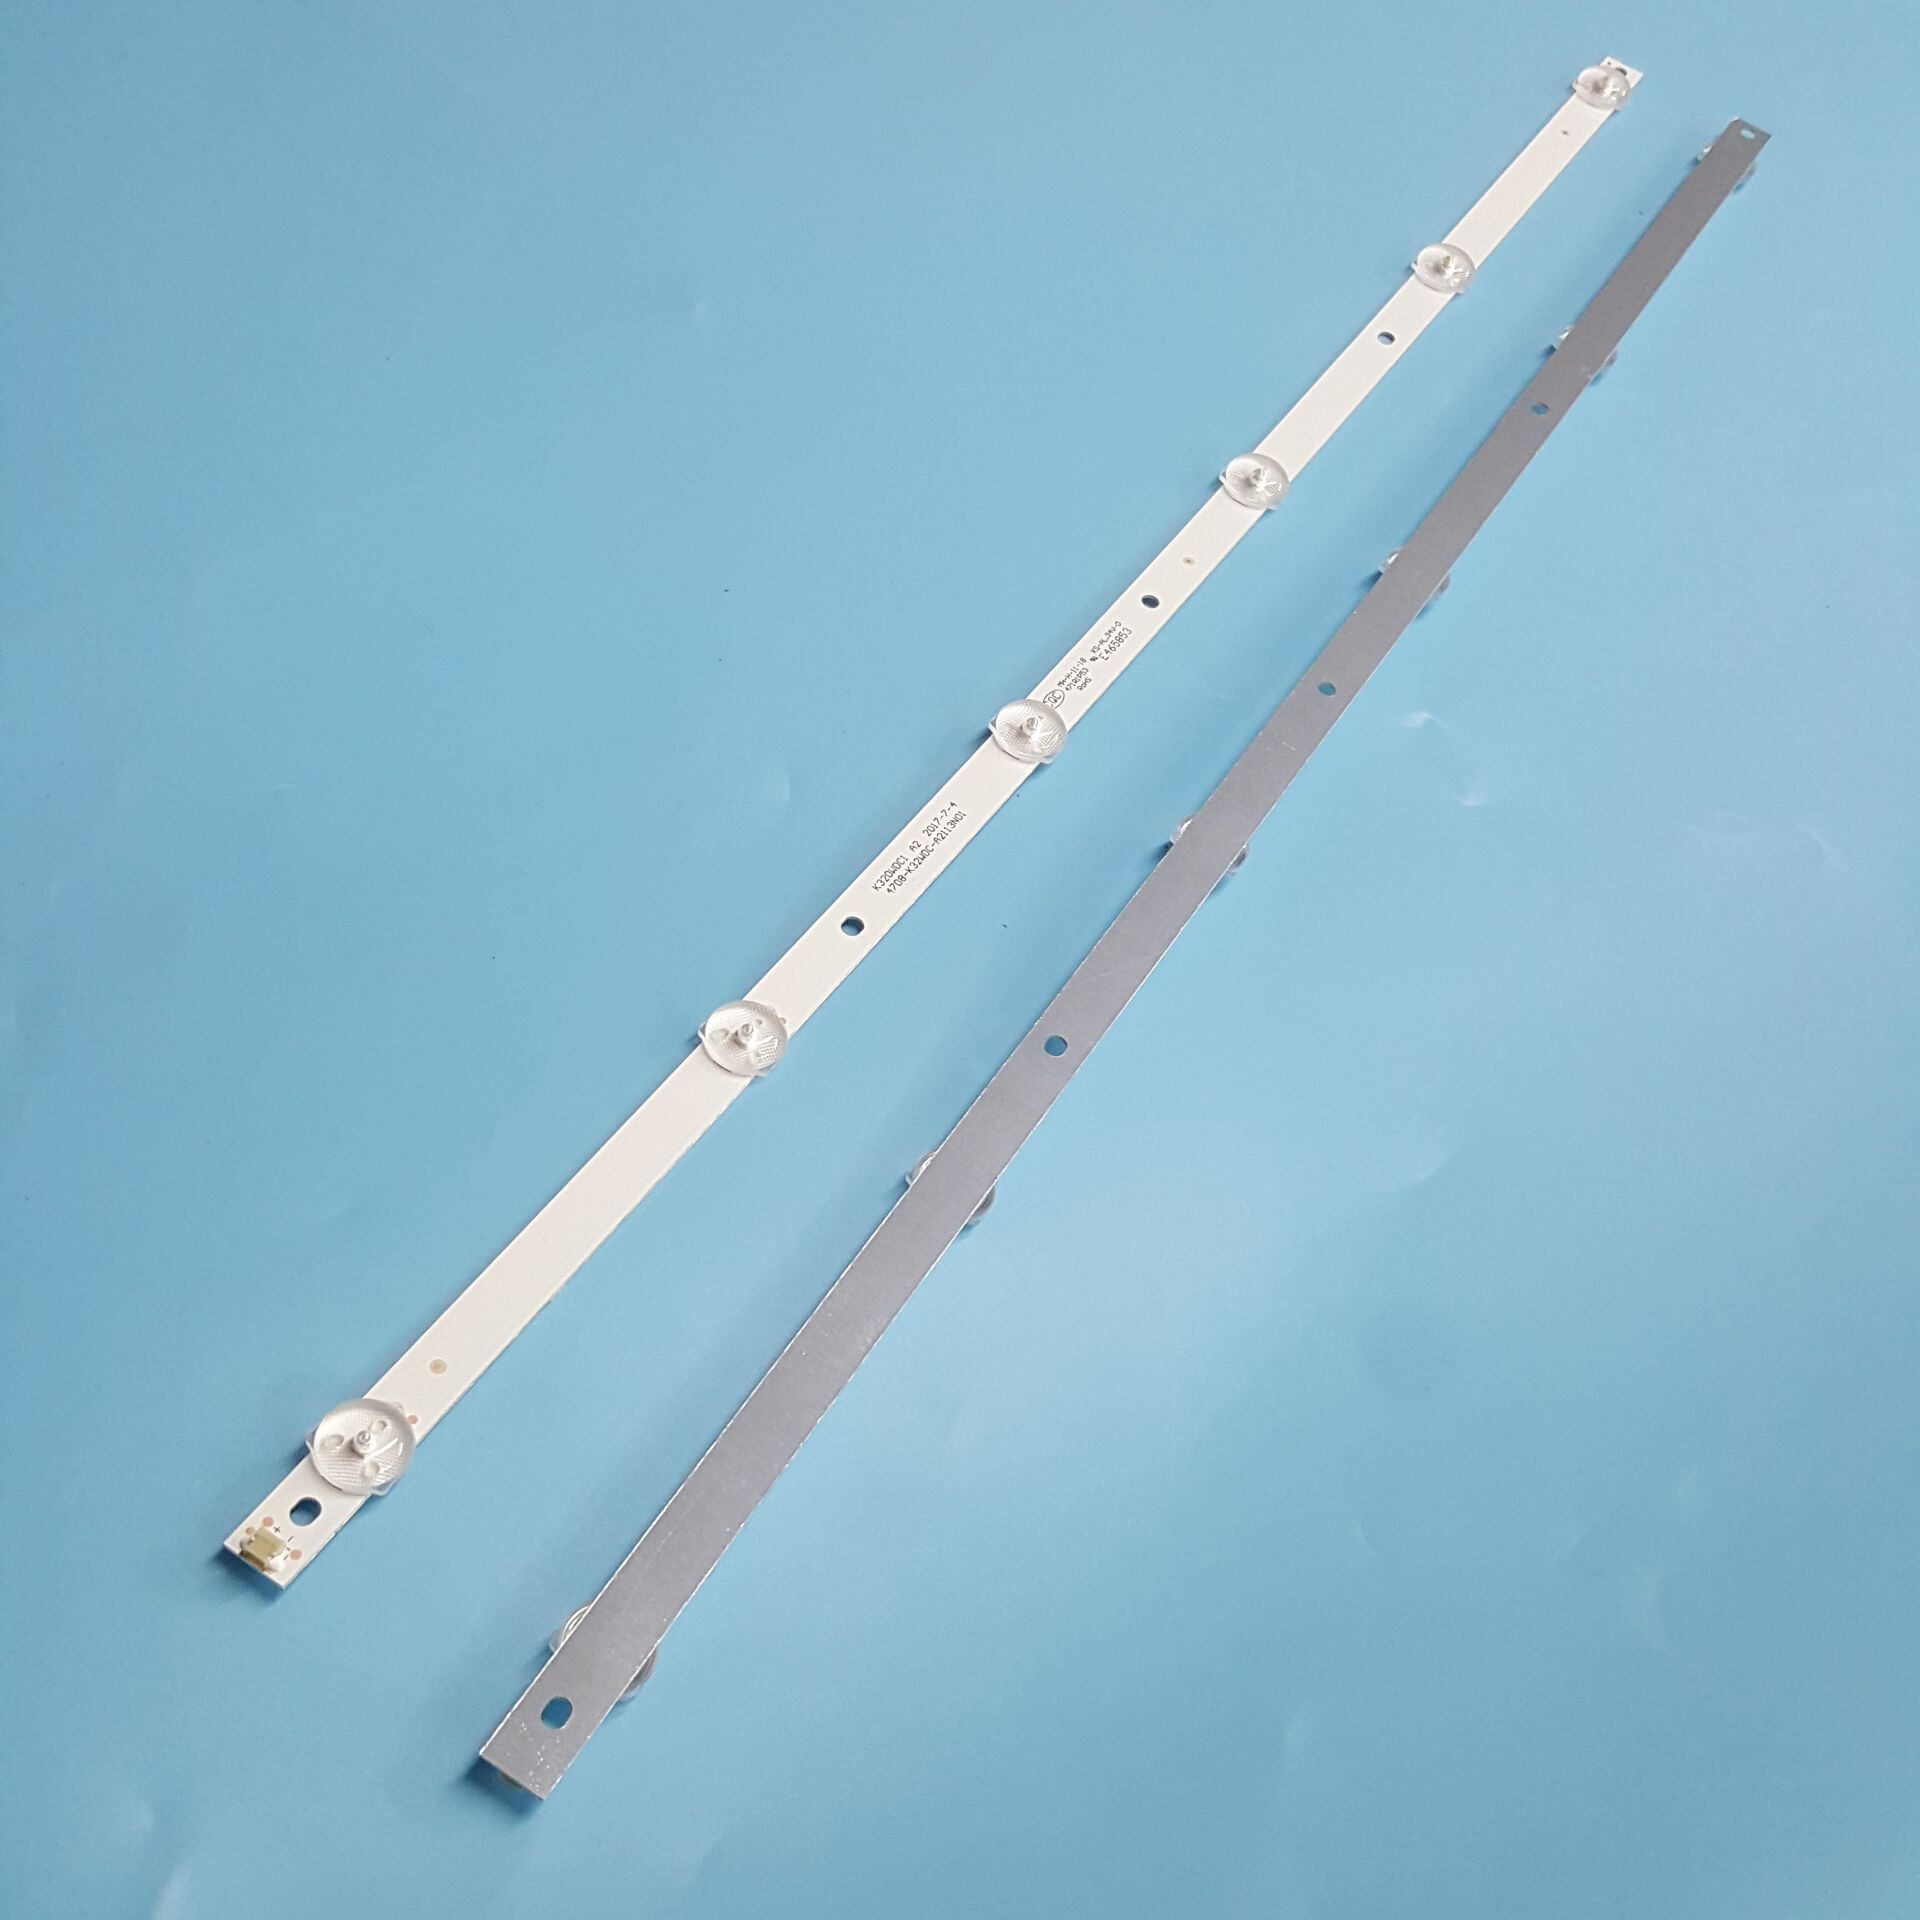 LED Backlight Strip 6 Lamp For HUGO 32inch K320WDC1 A2 4708-K32WDC-A2113N01 6LED 583MM TX-32ER250ZZ K320WDC2B